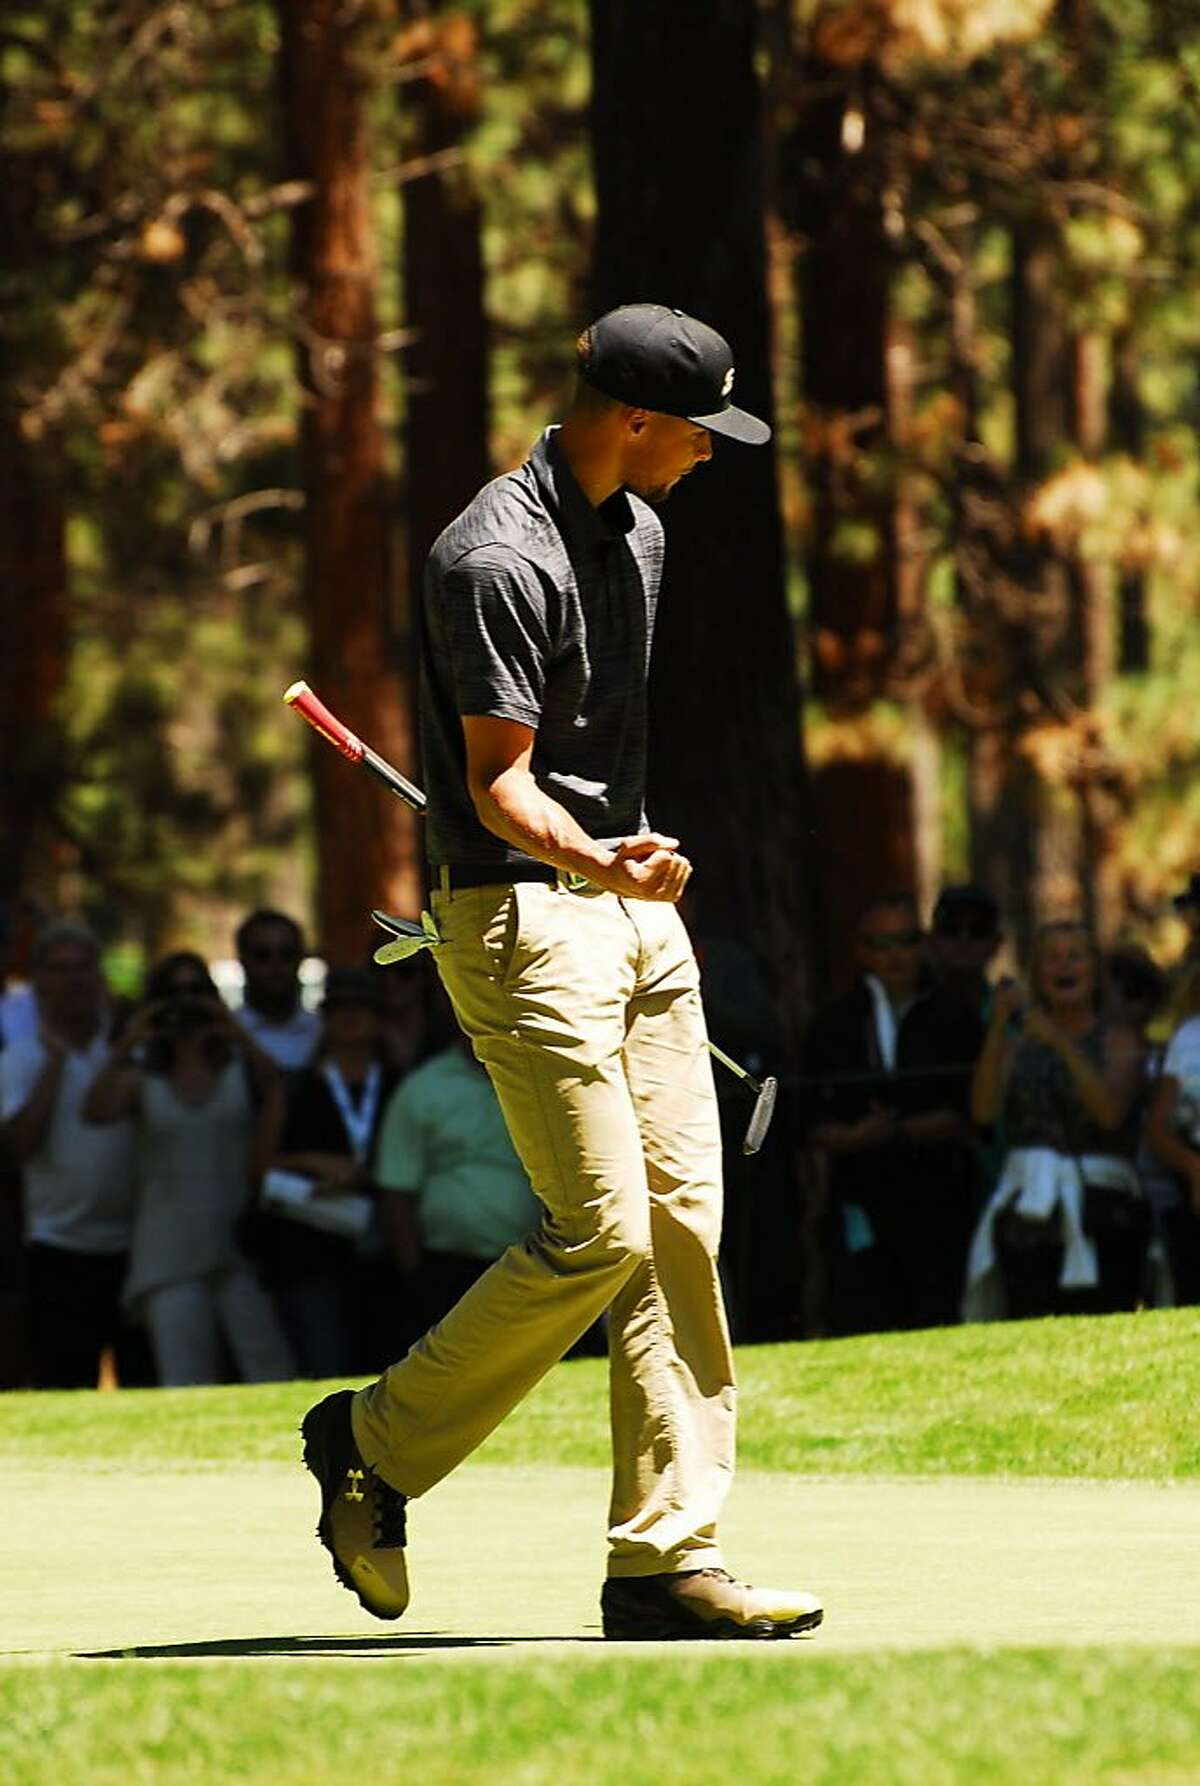 Stephen Curry, Justin Timberlake and Alfonso Ribeiro played golf in front of �big crowds at the American Century Championship at Edgewood Tahoe Golf course in Stateline, Nev., on July 23. The trip played a lot of golf and found time to ham it up, too, especially on the tournament's raucous 17th hole, which runs alongside Lake Tahoe.